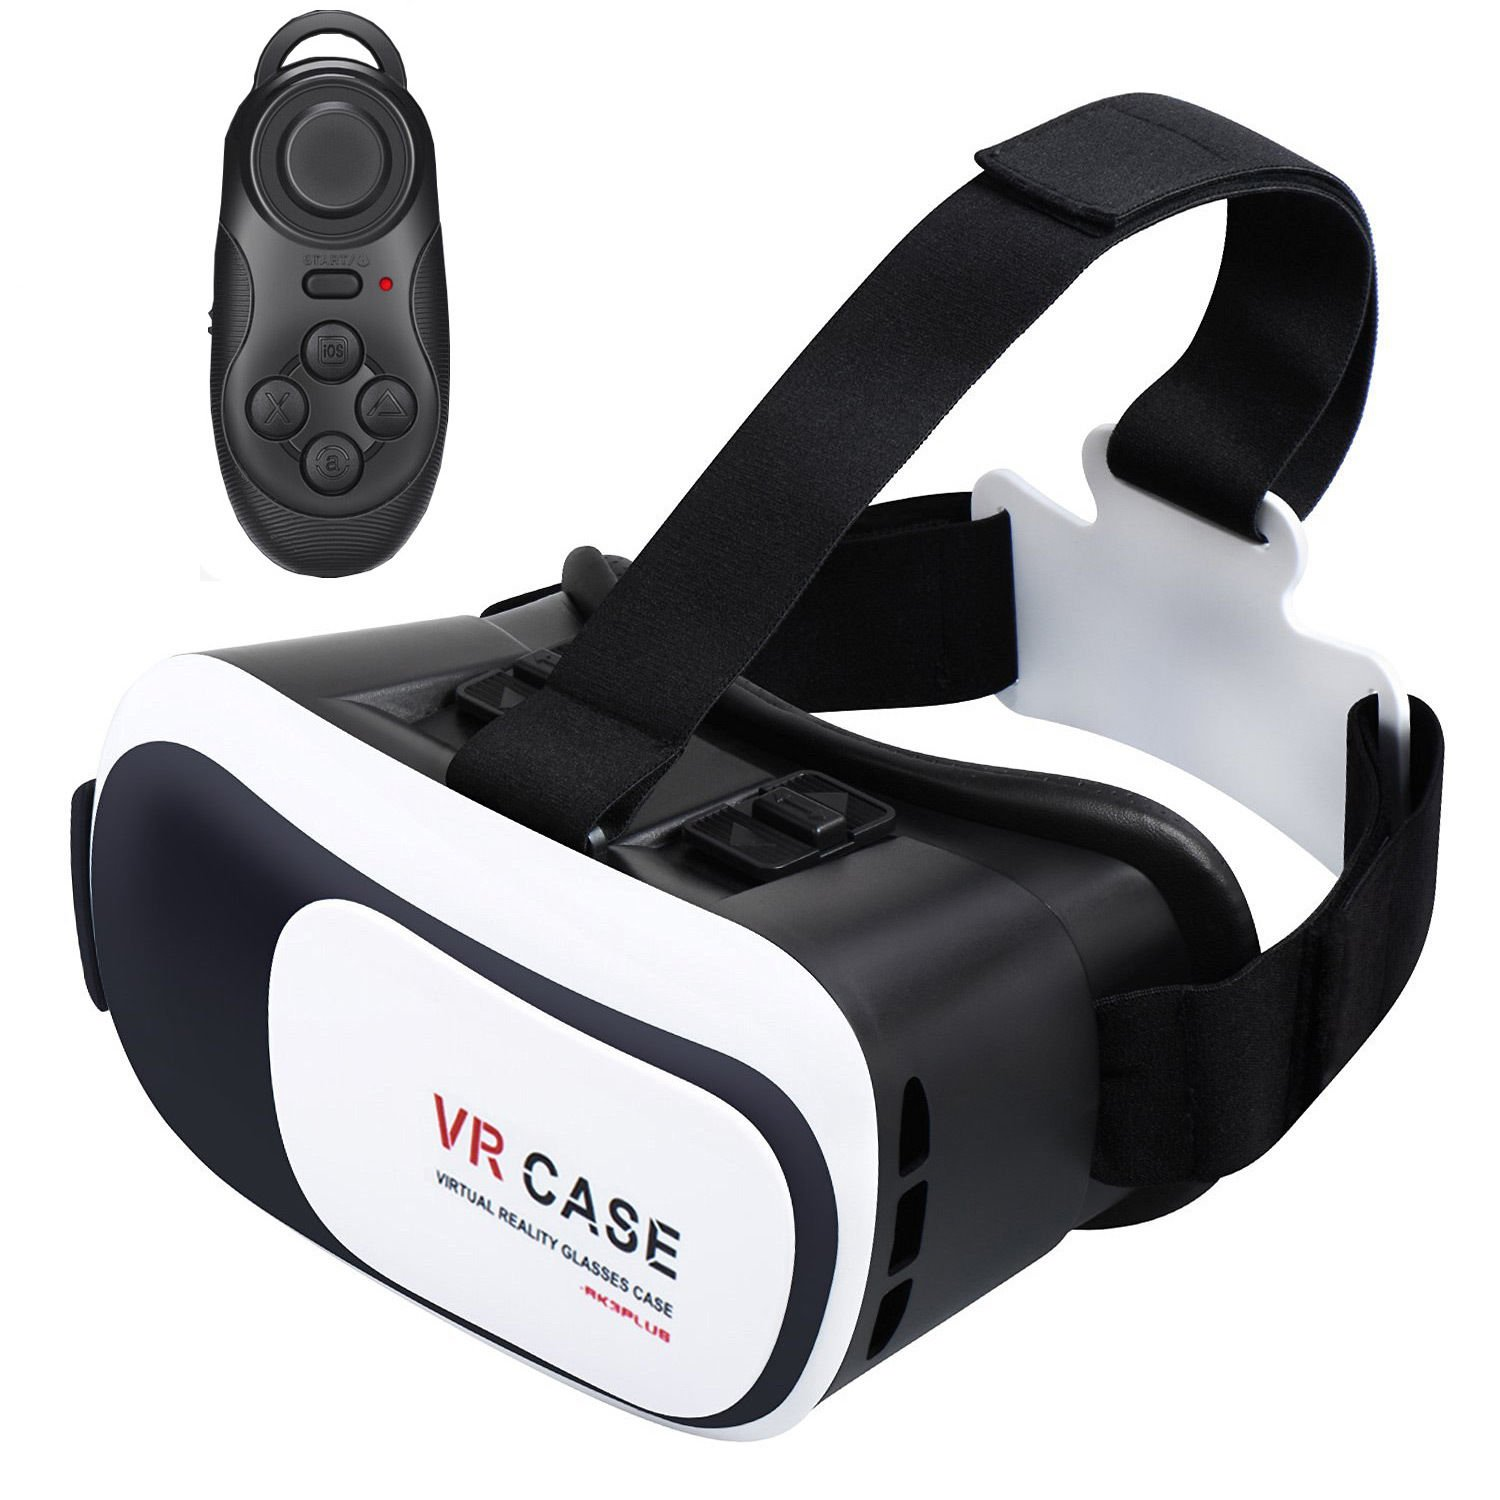 New Virtual Reality VR Headset 3D Glasses With Remote for Android IOS iPhone Samsung